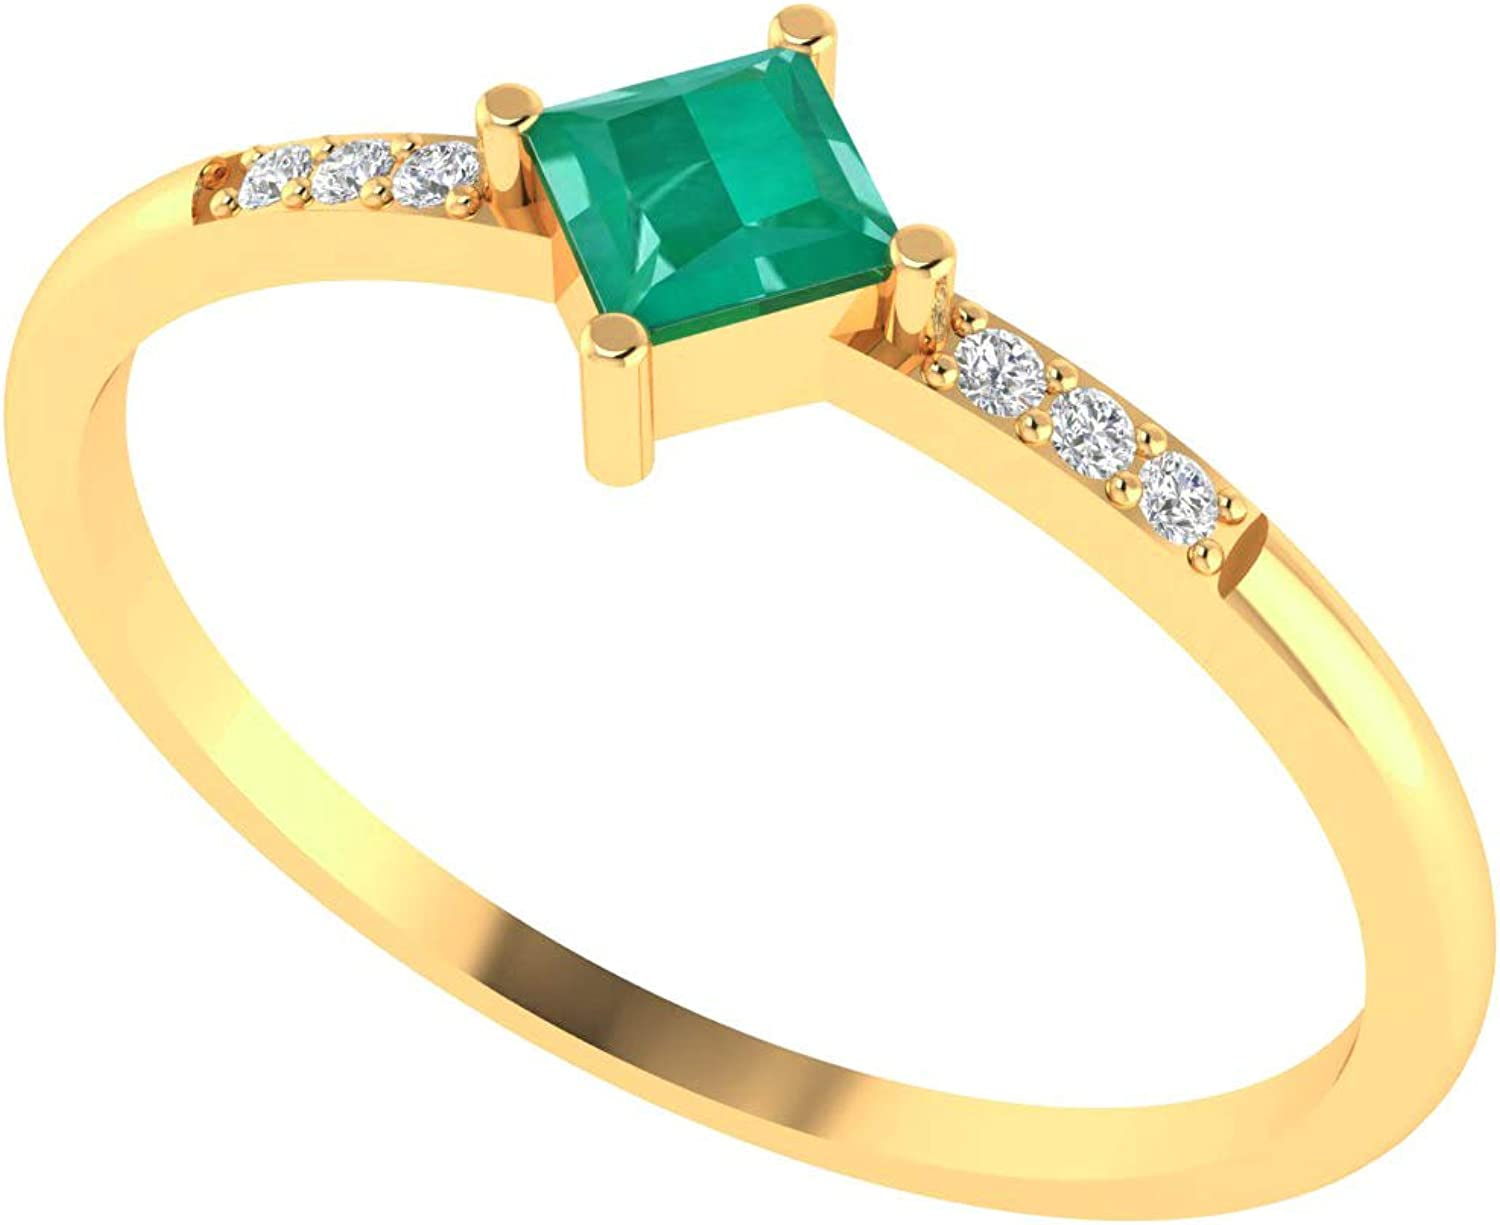 ASHNE JEWELS IGI Certified, Natural 0.15ct Emerald Gemstone Solitaire Band Ring Certified Diamond Fine Jewelry Made in 14K Solid Yellow Gold Fine Jewelry For Women and Girls